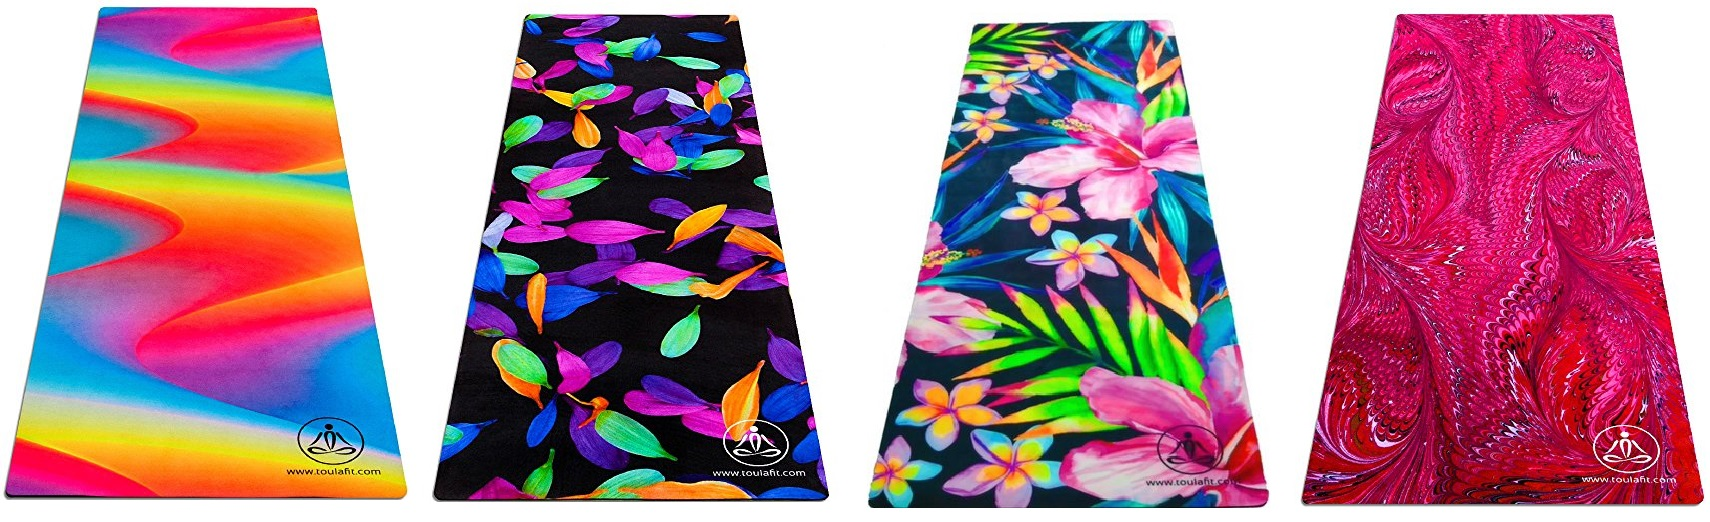 toulafit colorful yoga mats